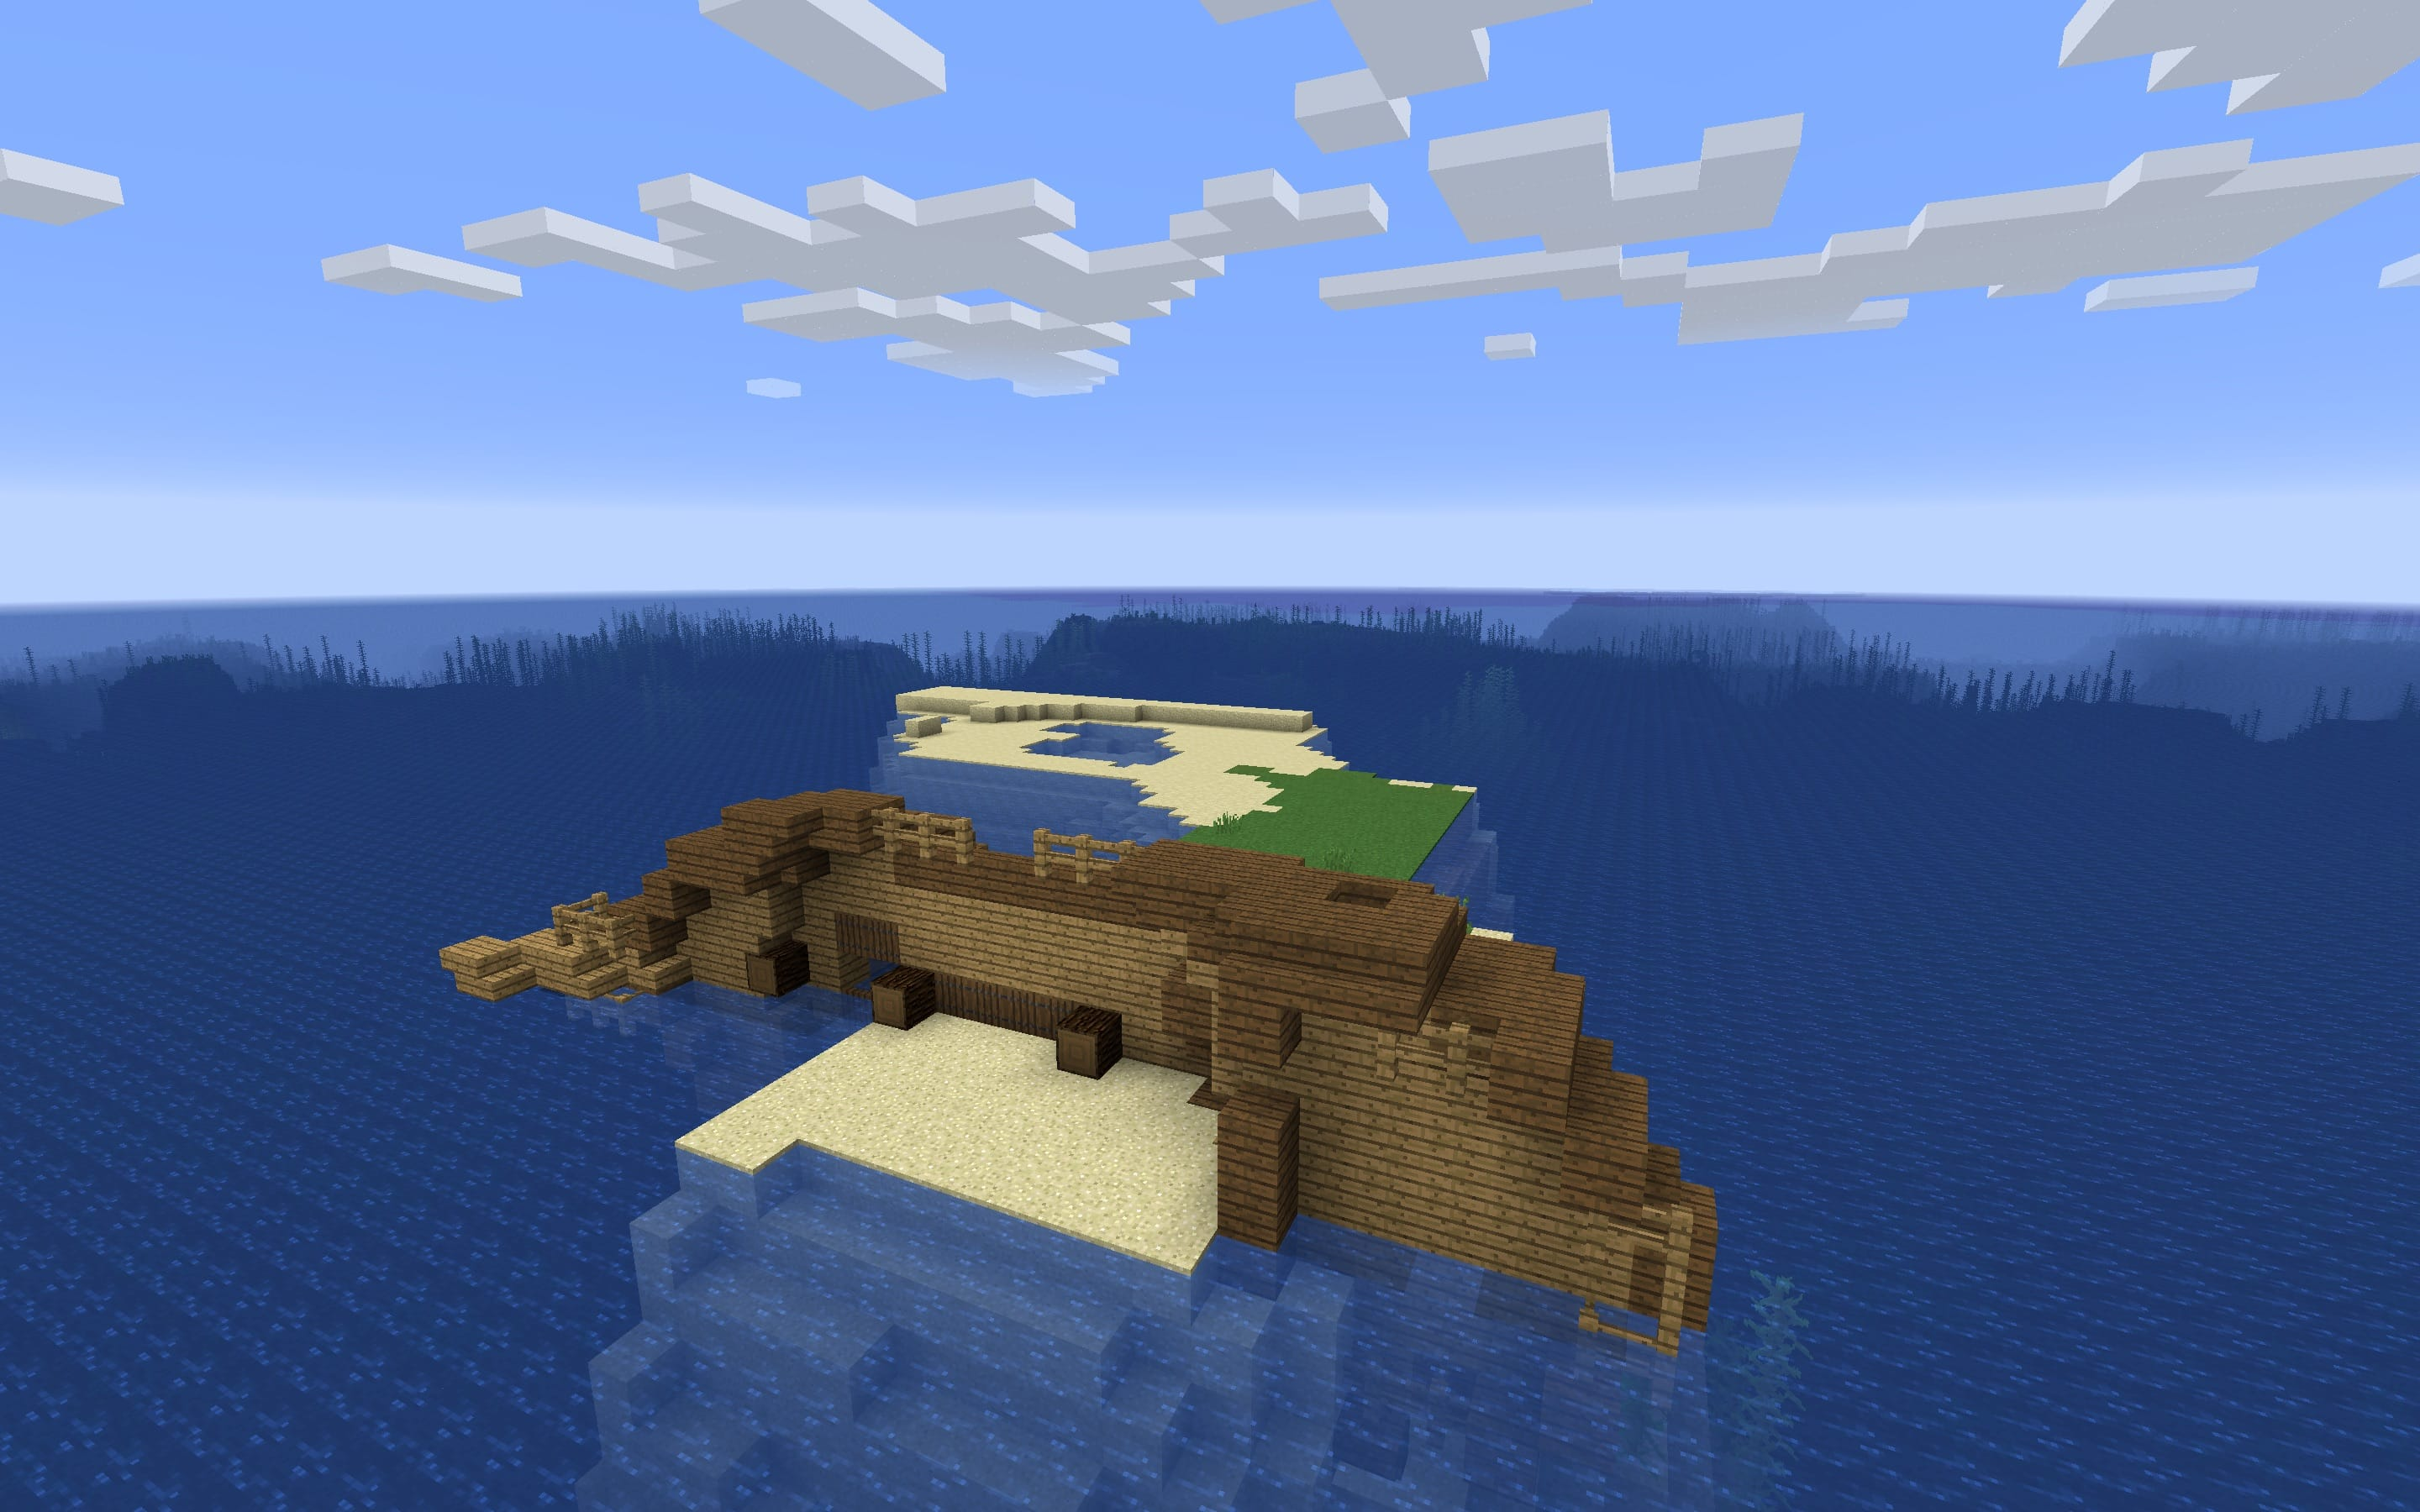 Minecraft Survival Island Top 3 Seeds 1 2 Also Artomix C1 Marooned Shipwreck On Seed Hq